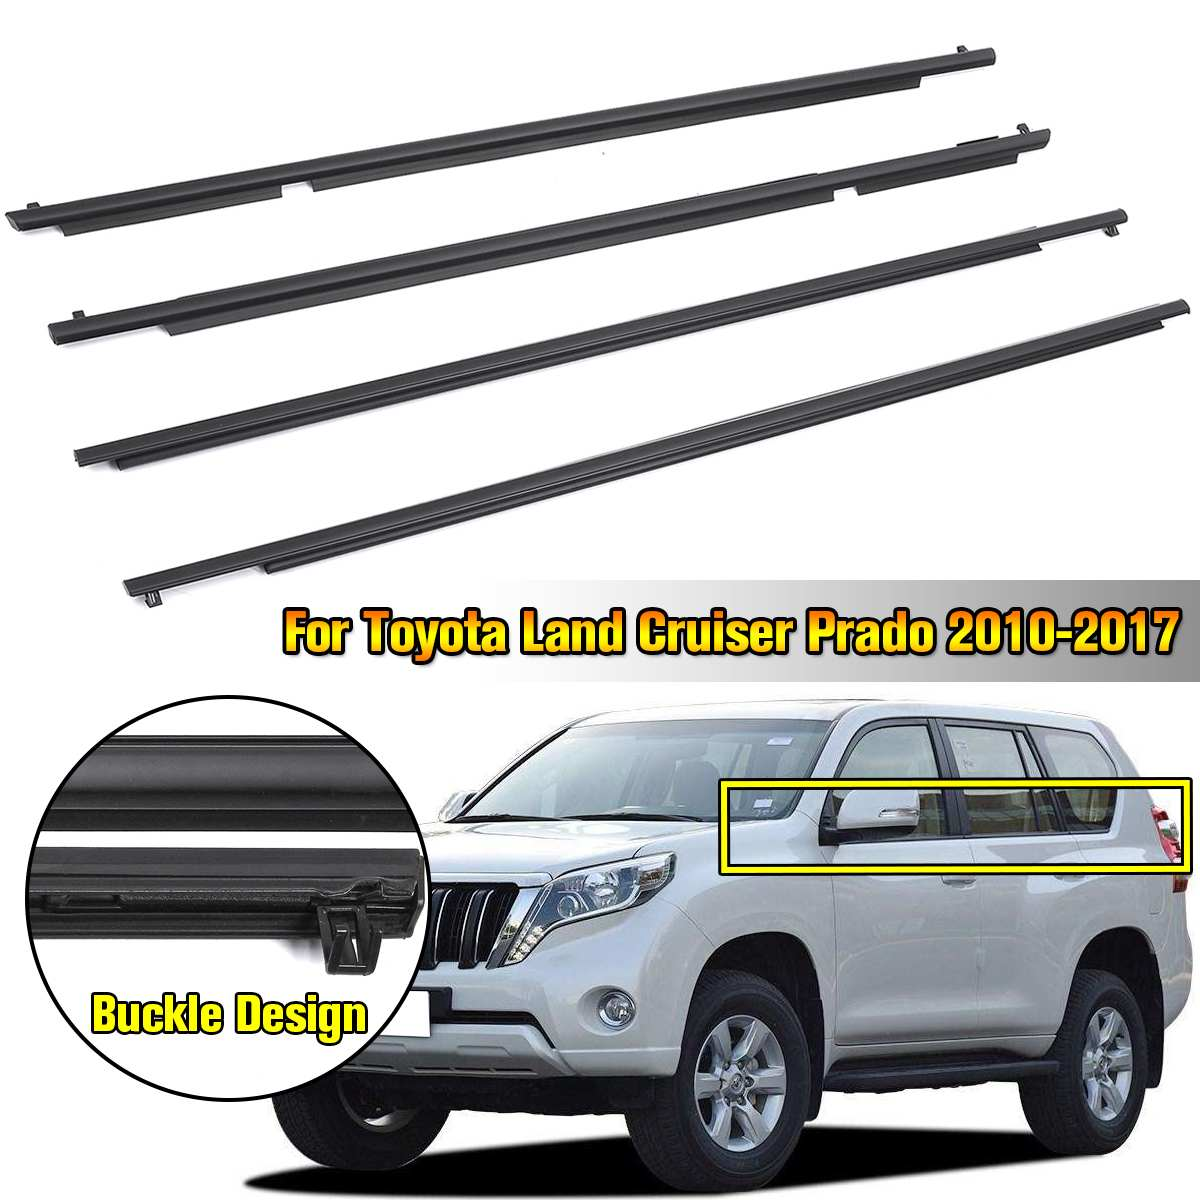 4PCS Window Door Belt Moulding Trims Weather strip Strip Wind Rain Deflector Set For Toyota Land Cruiser Prado 2010 2017